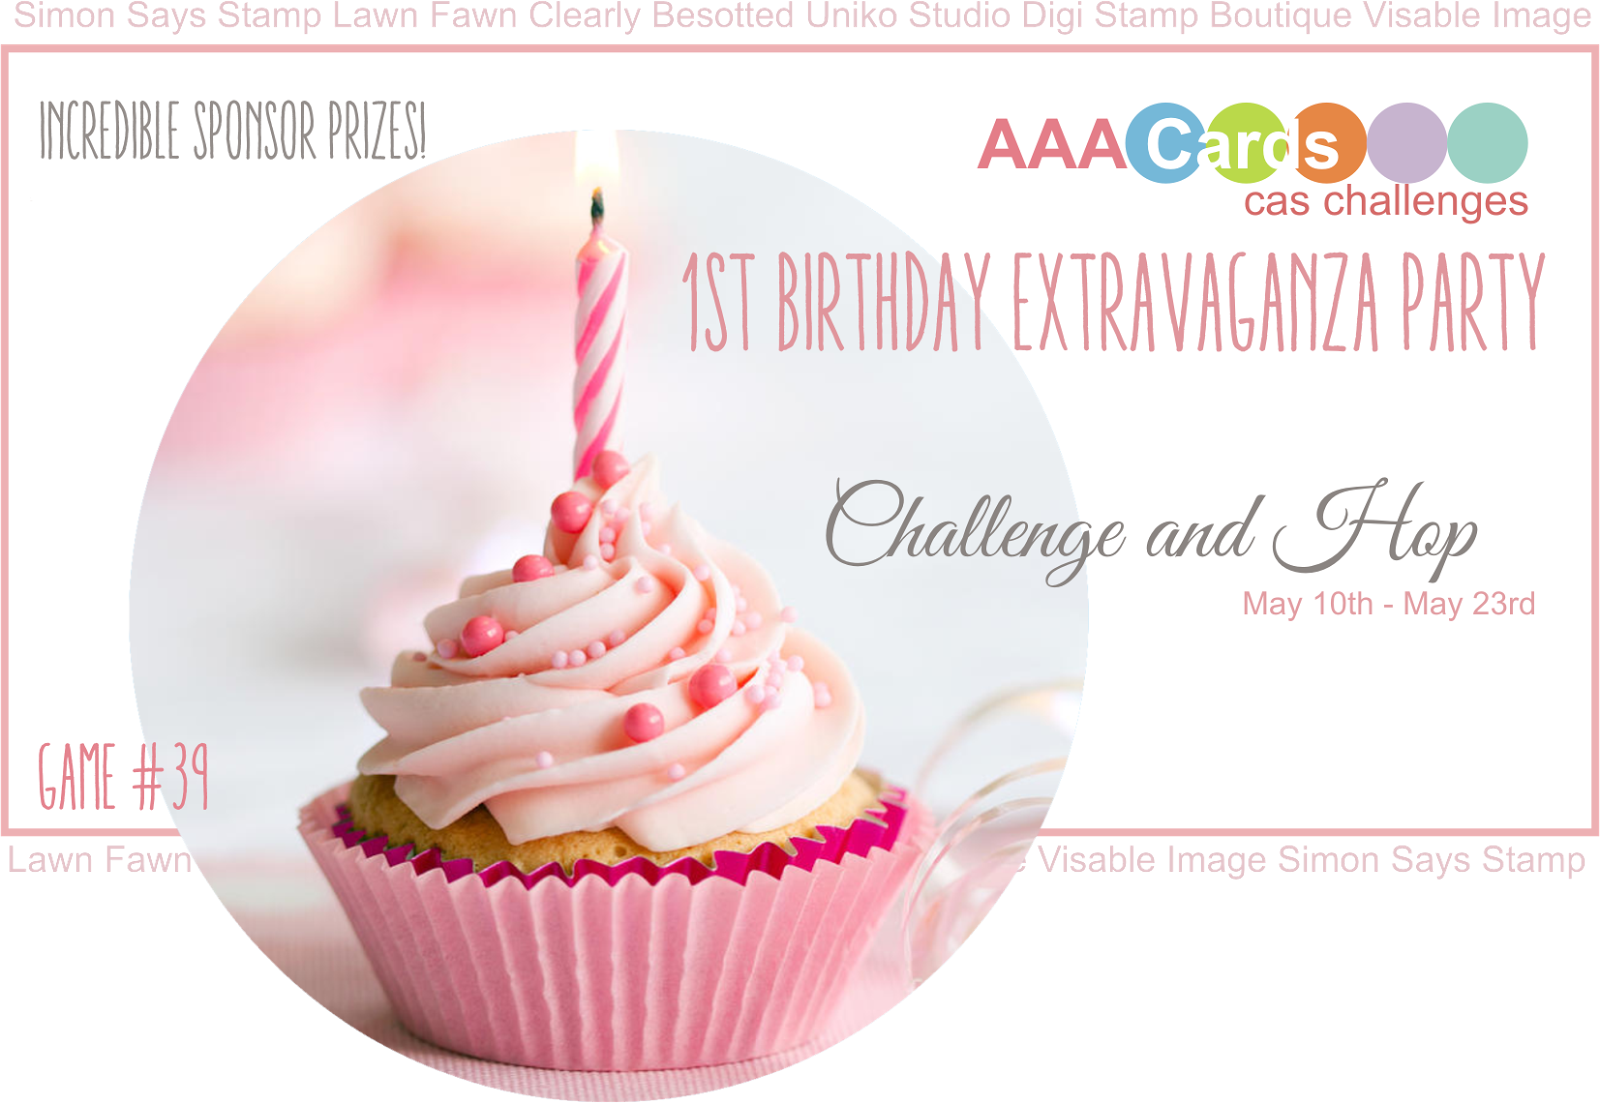 http://www.aaacards.blogspot.co.uk/2015/05/game-39-1st-birthday-extravaganza-party_10.html